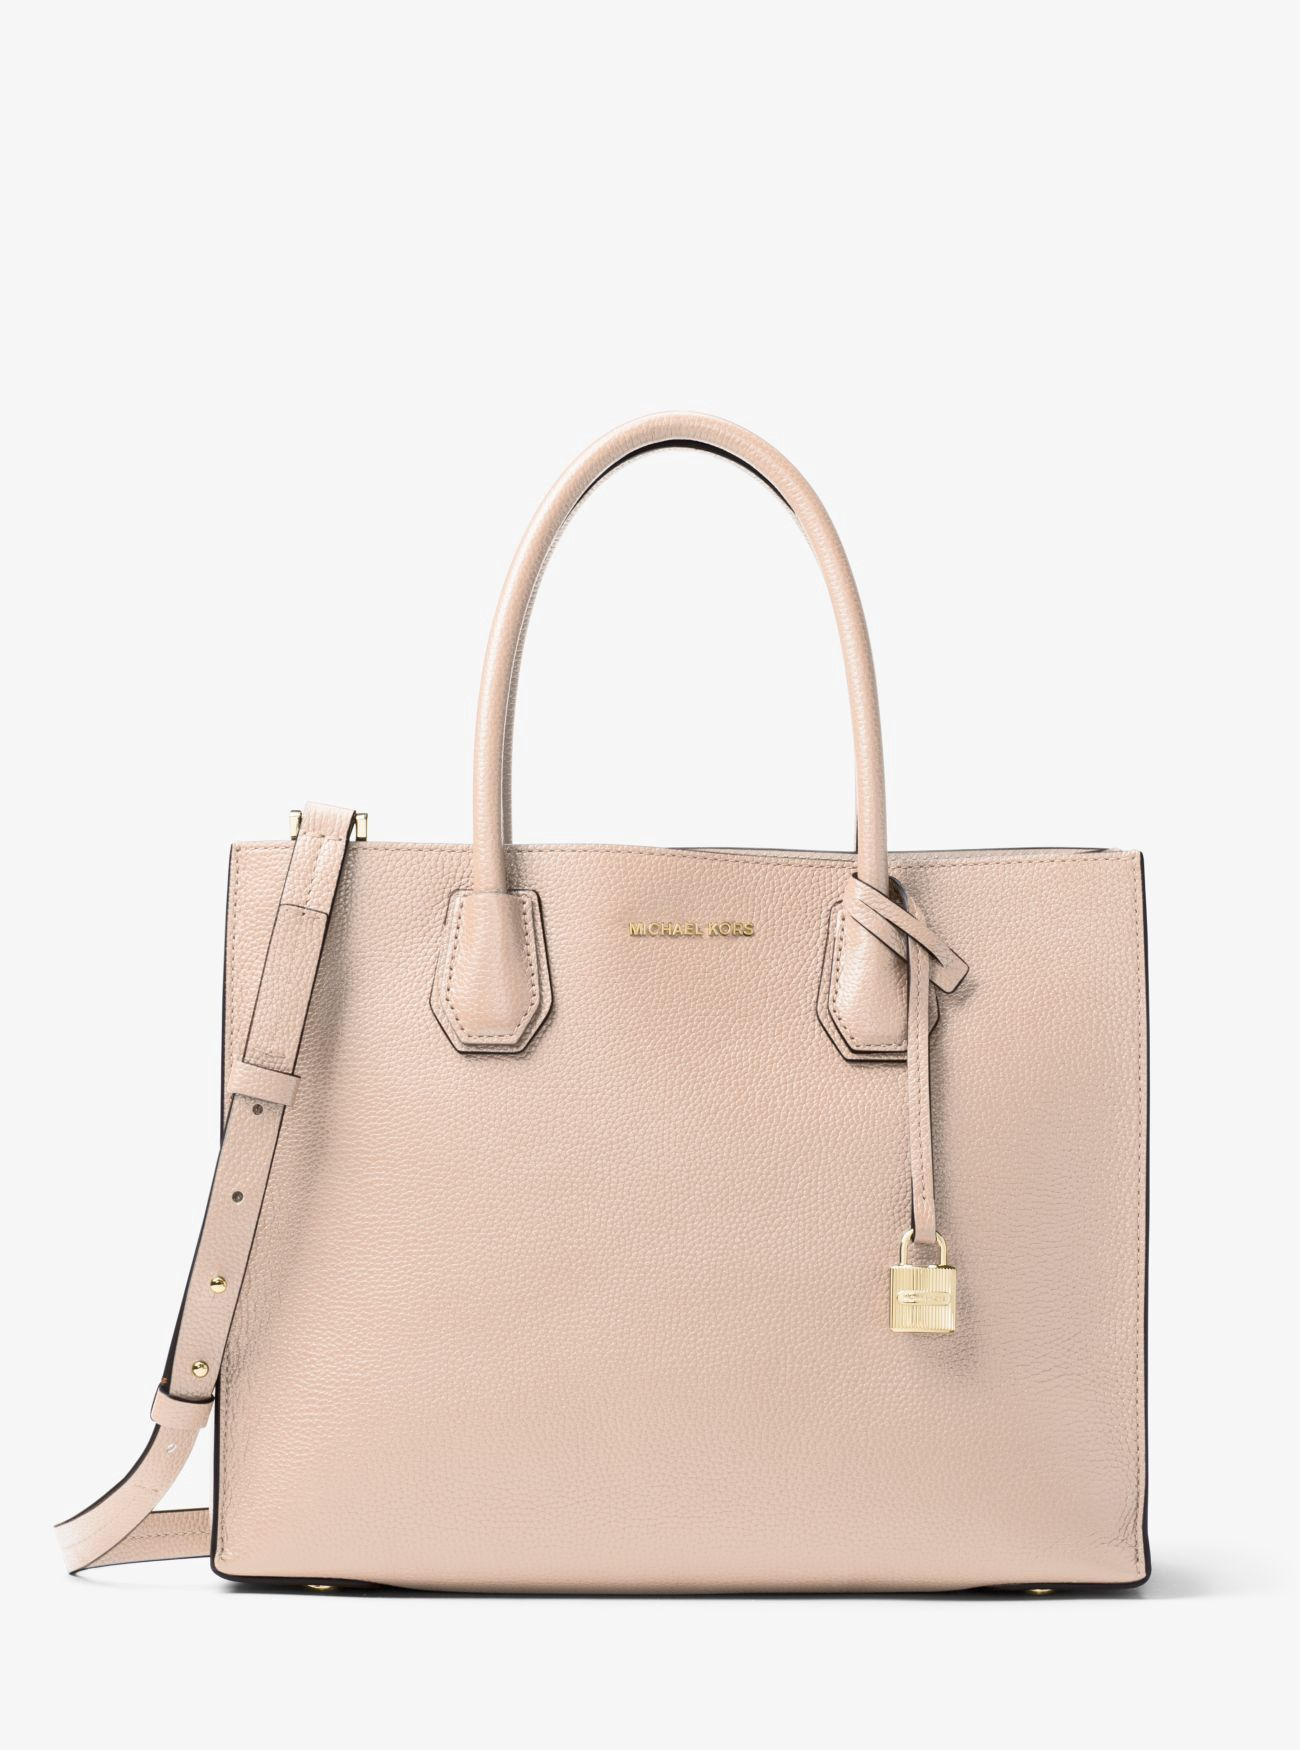 MICHAEL KORS Mercer Large Leather Tote.  michaelkors  bags  canvas  tote   leather  lining  polyester  shoulder bags  hand bags   cbe6a3ba6d83e